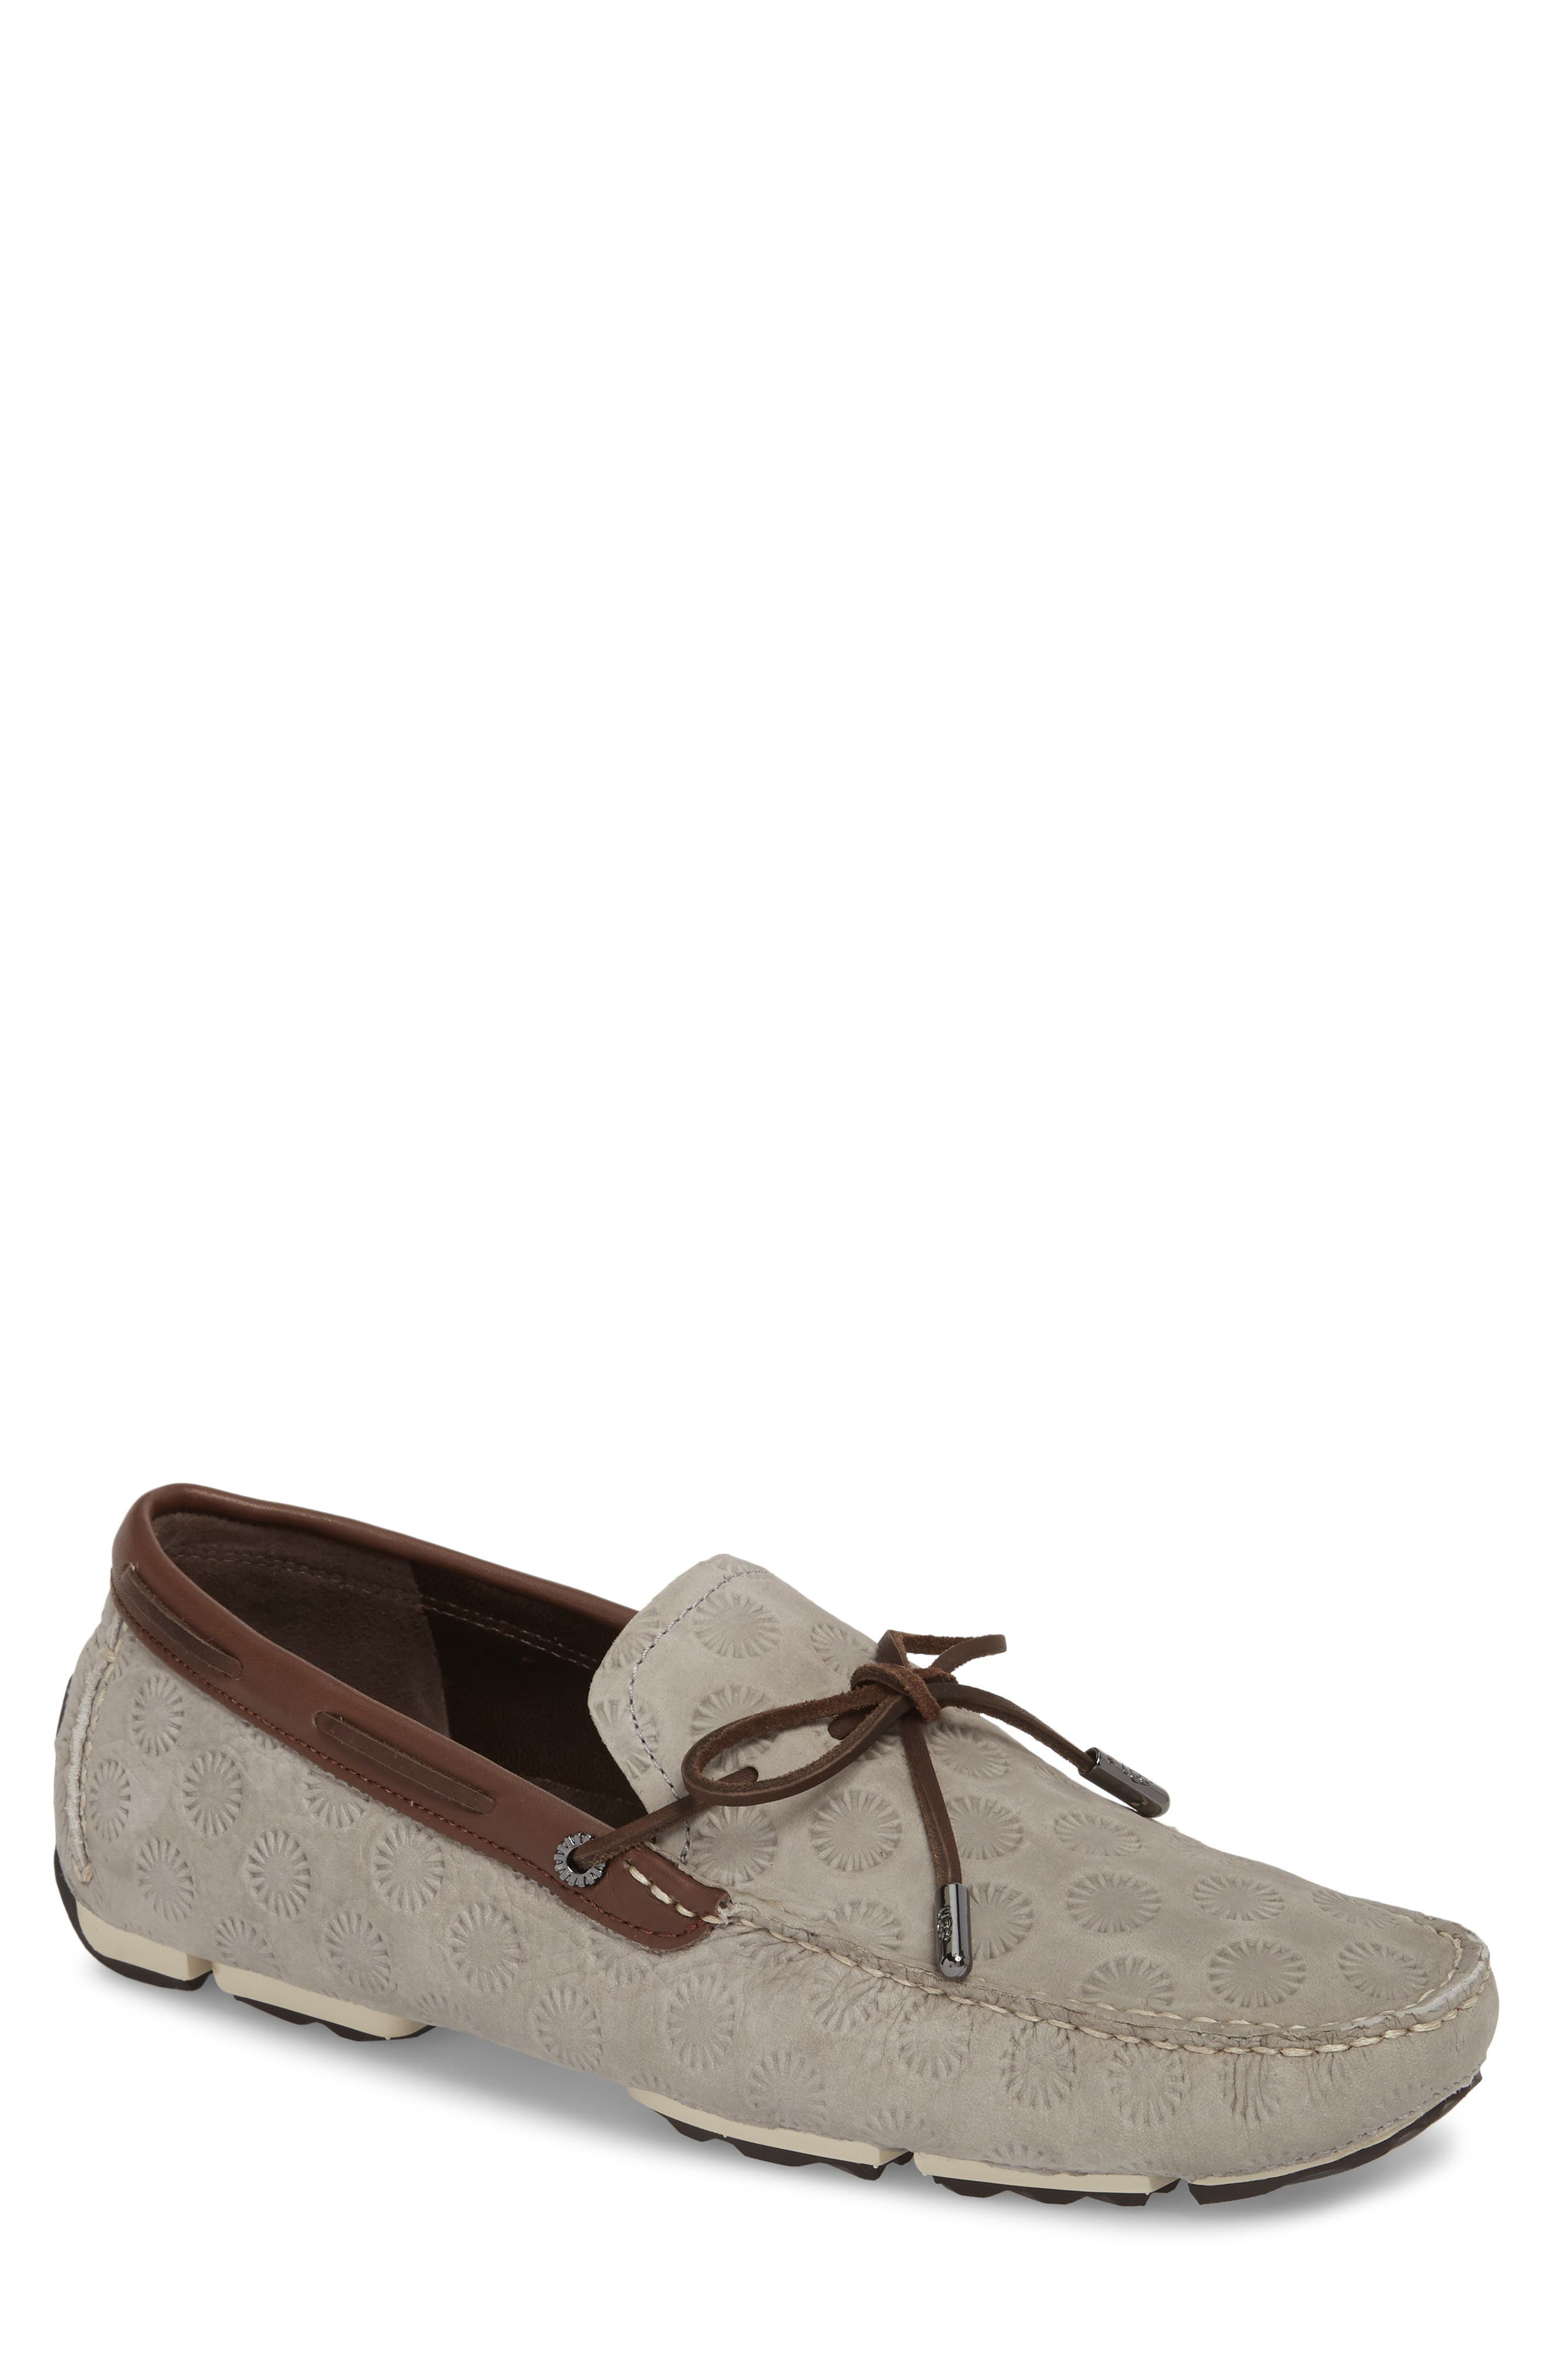 Bel Air Embossed Driving Moccasin,                         Main,                         color, Seal Leather